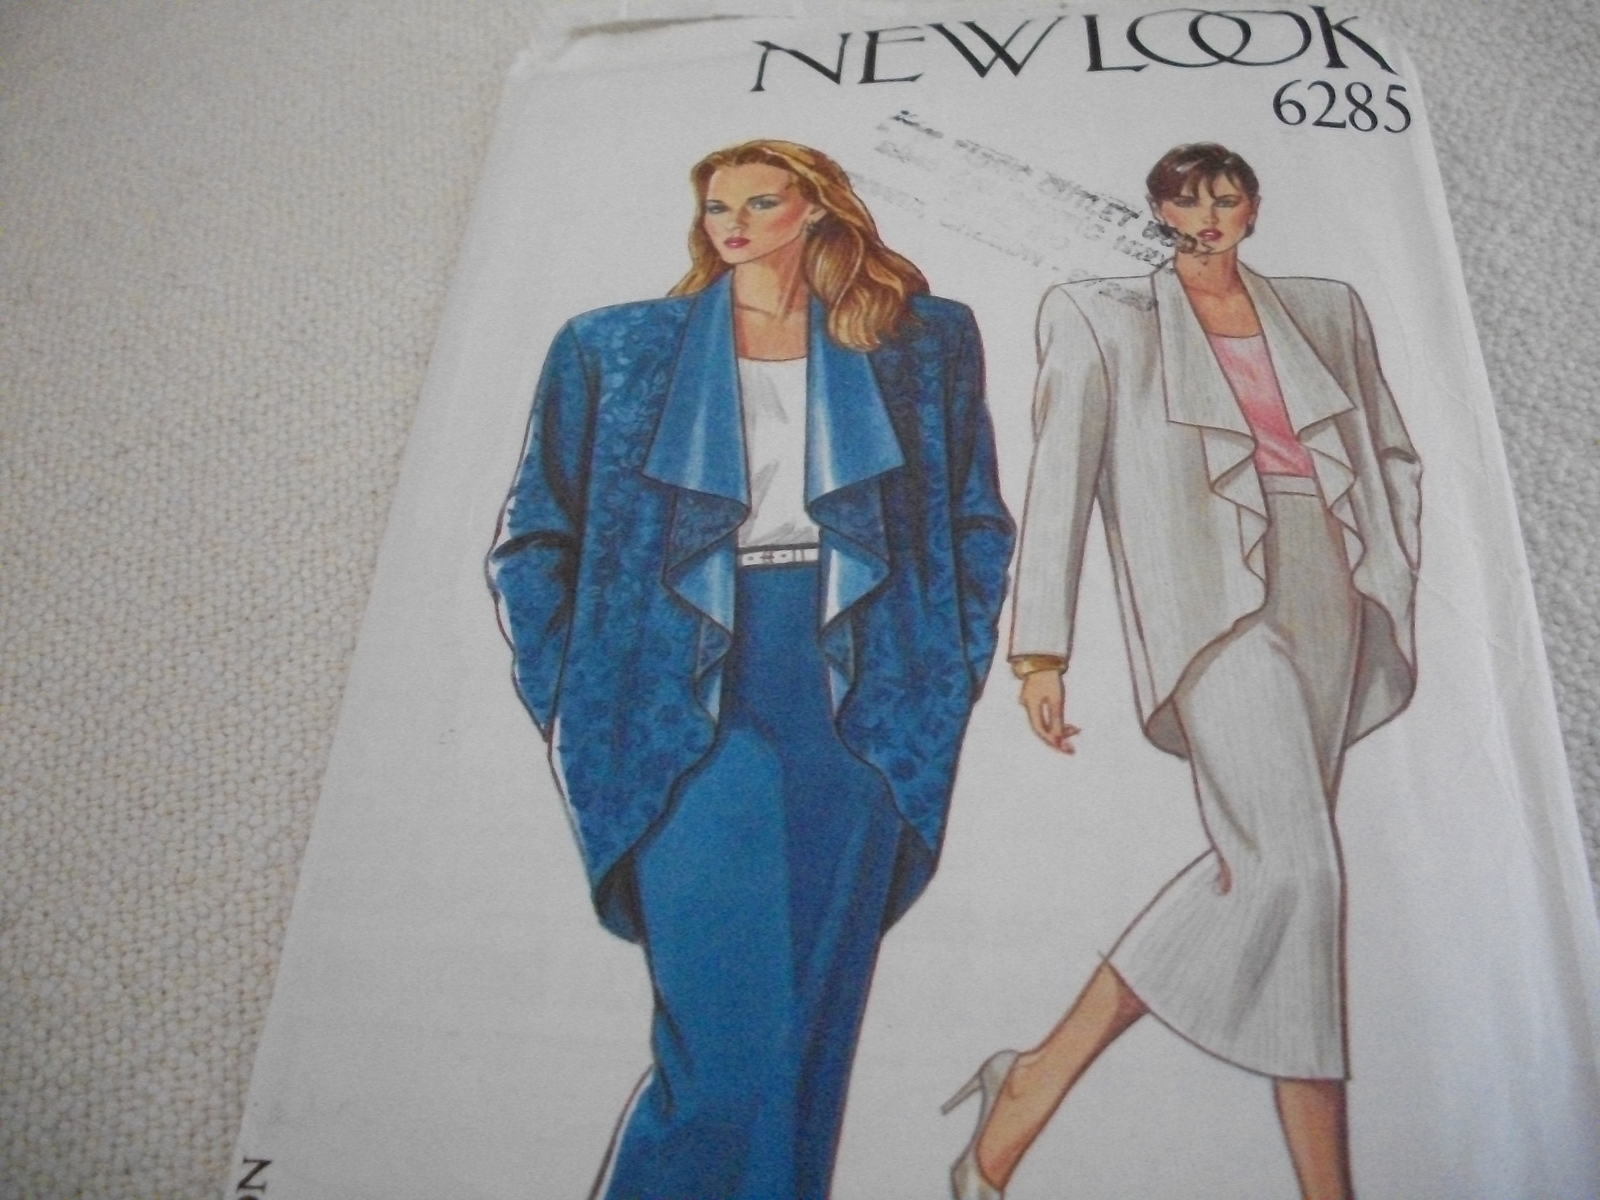 Primary image for Misses' Skirt & Jacket Pattern New Look Simplicity 6285